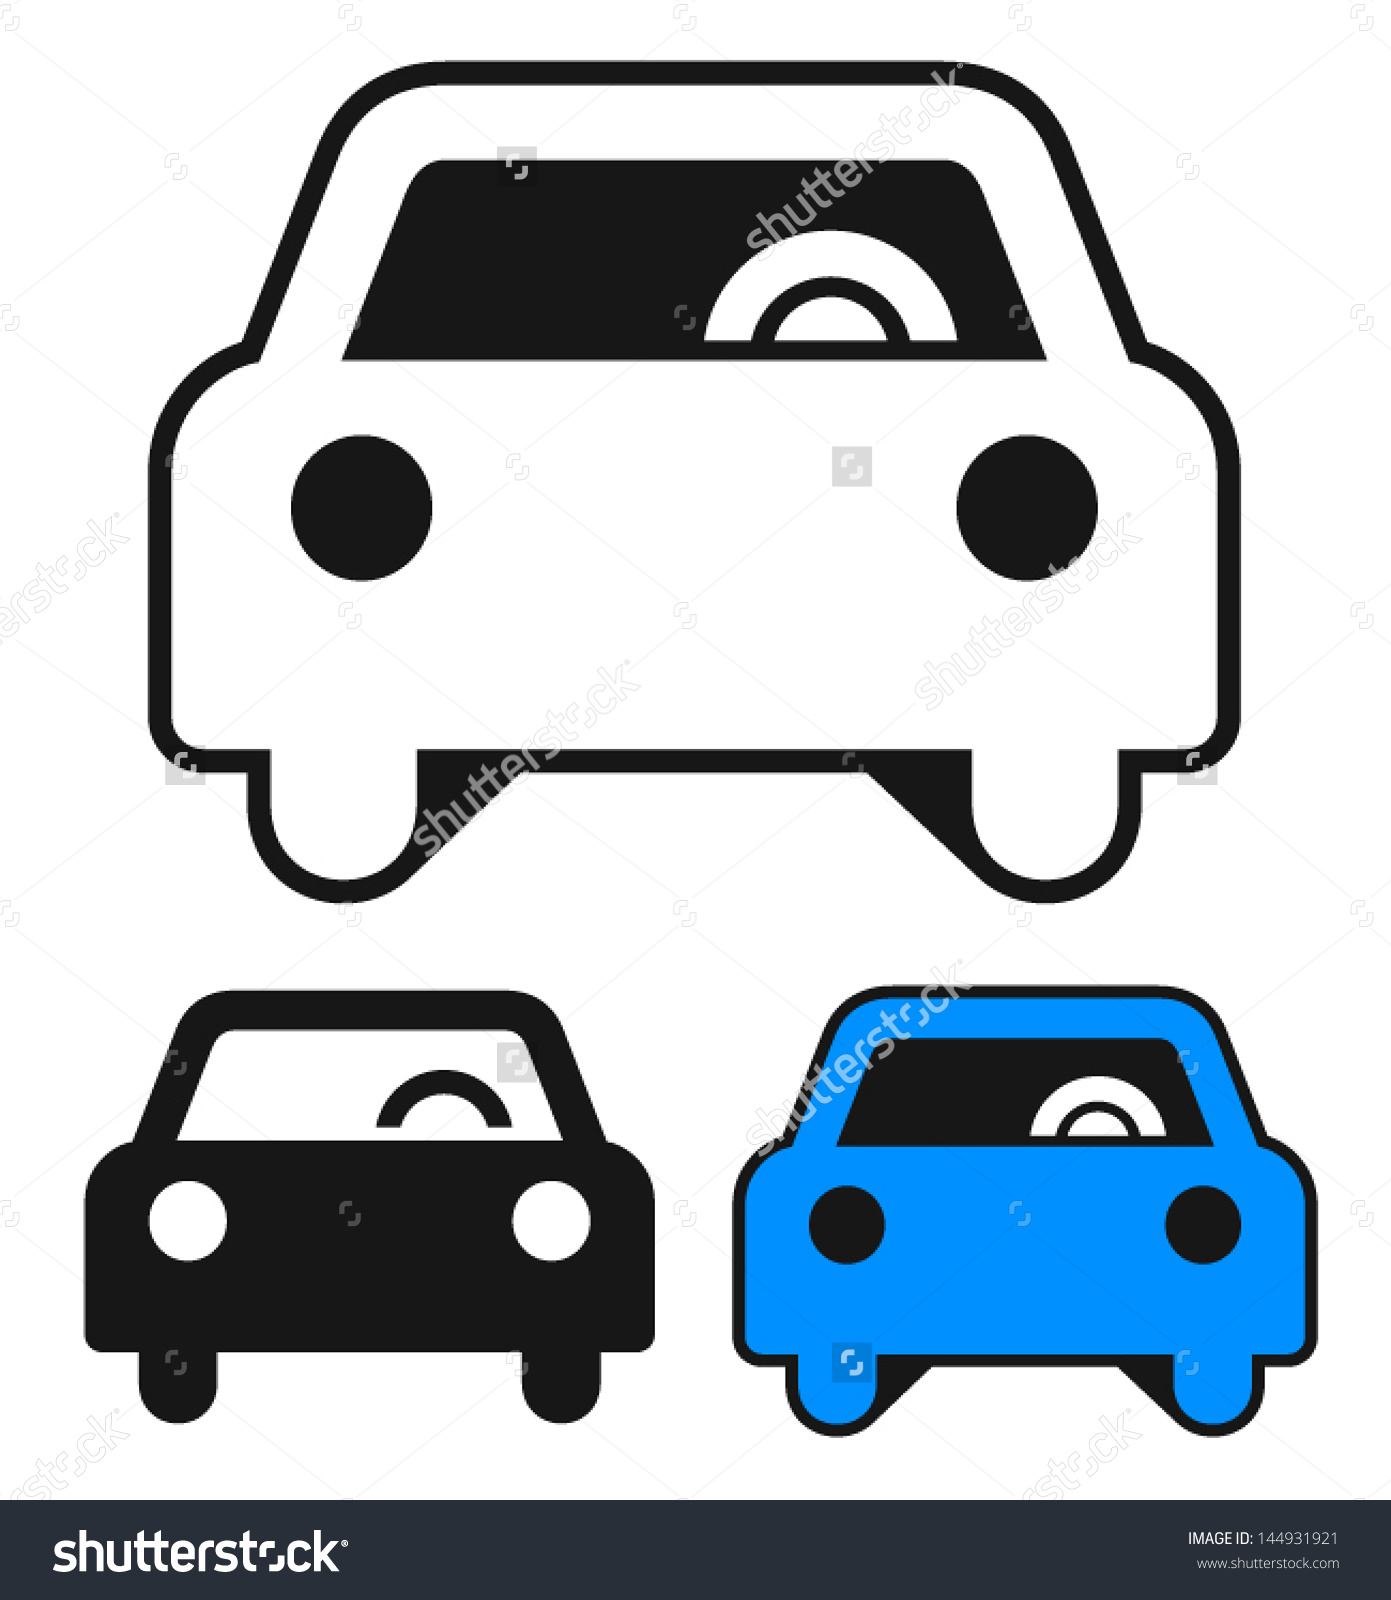 Clipart Style Car Icons Perspective Either Stock Vector 144931921.